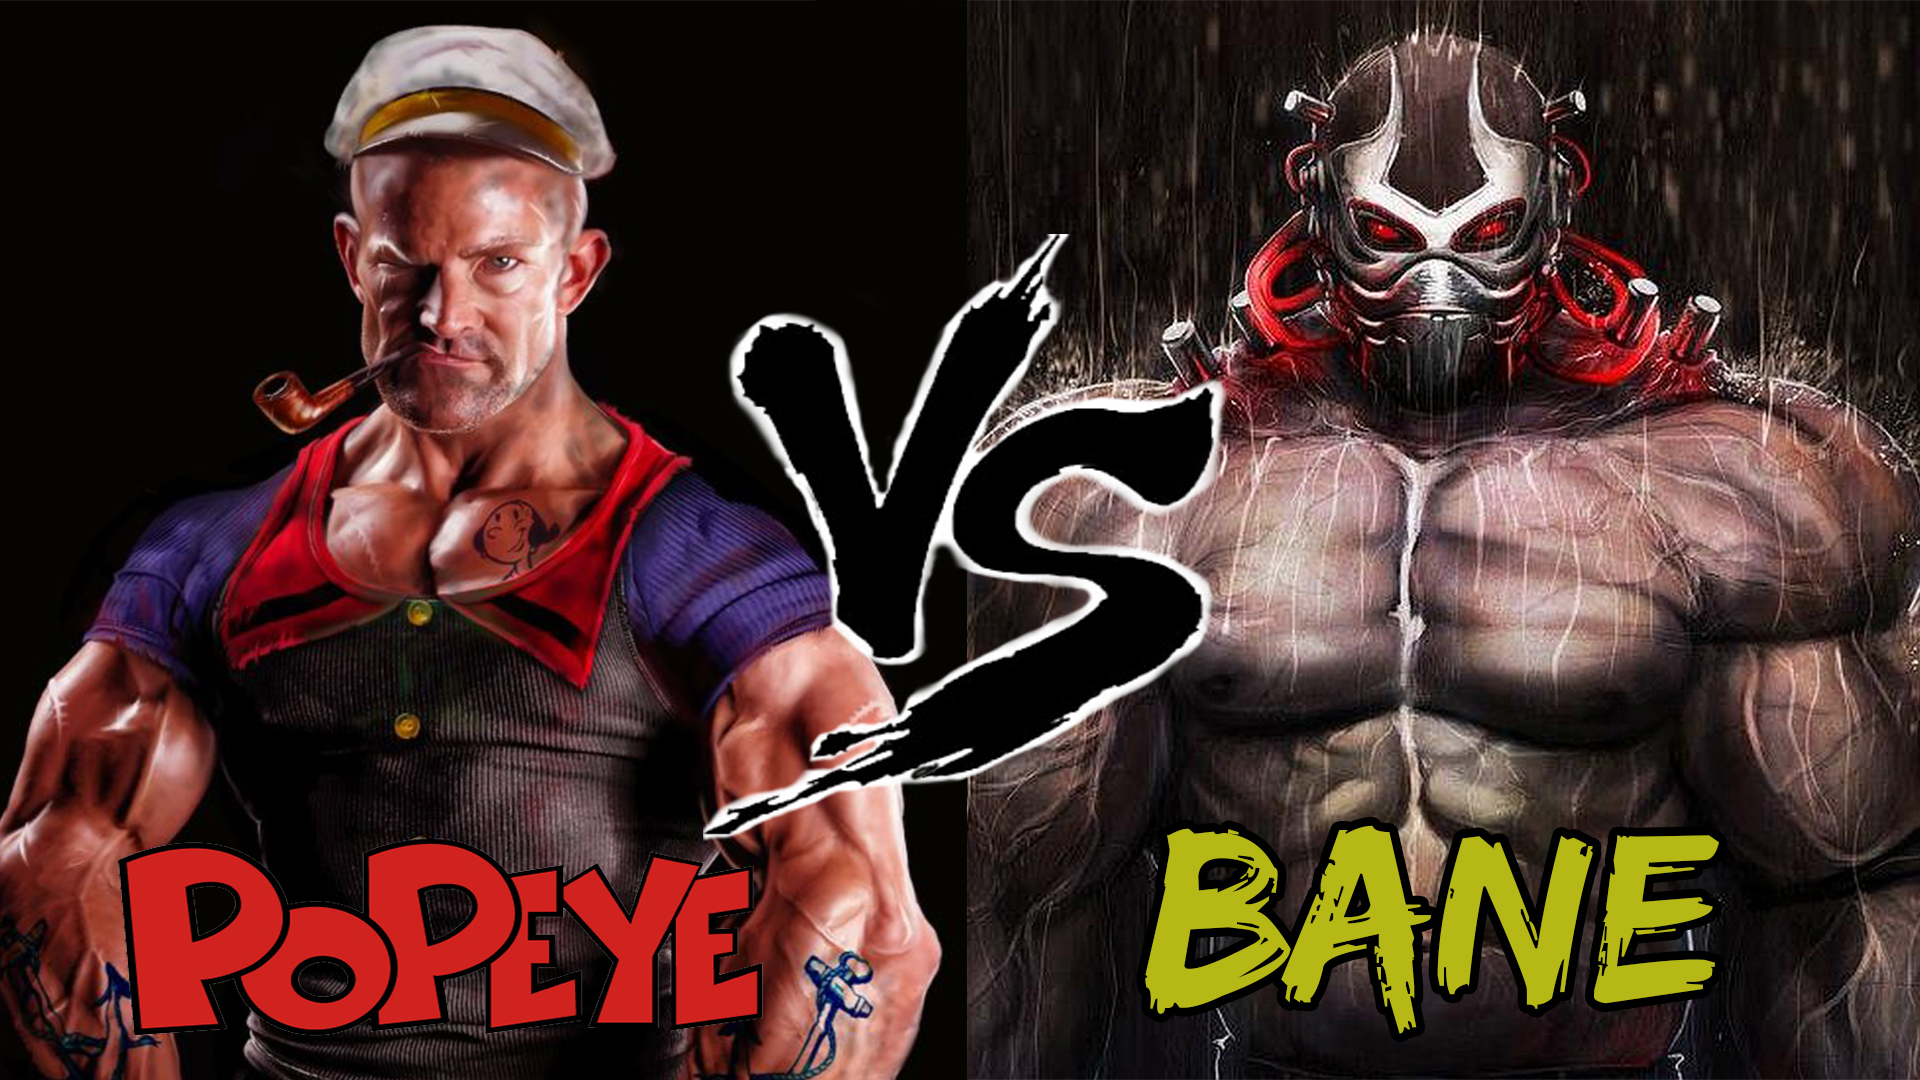 Popeye VS Bane Titles Effects 2